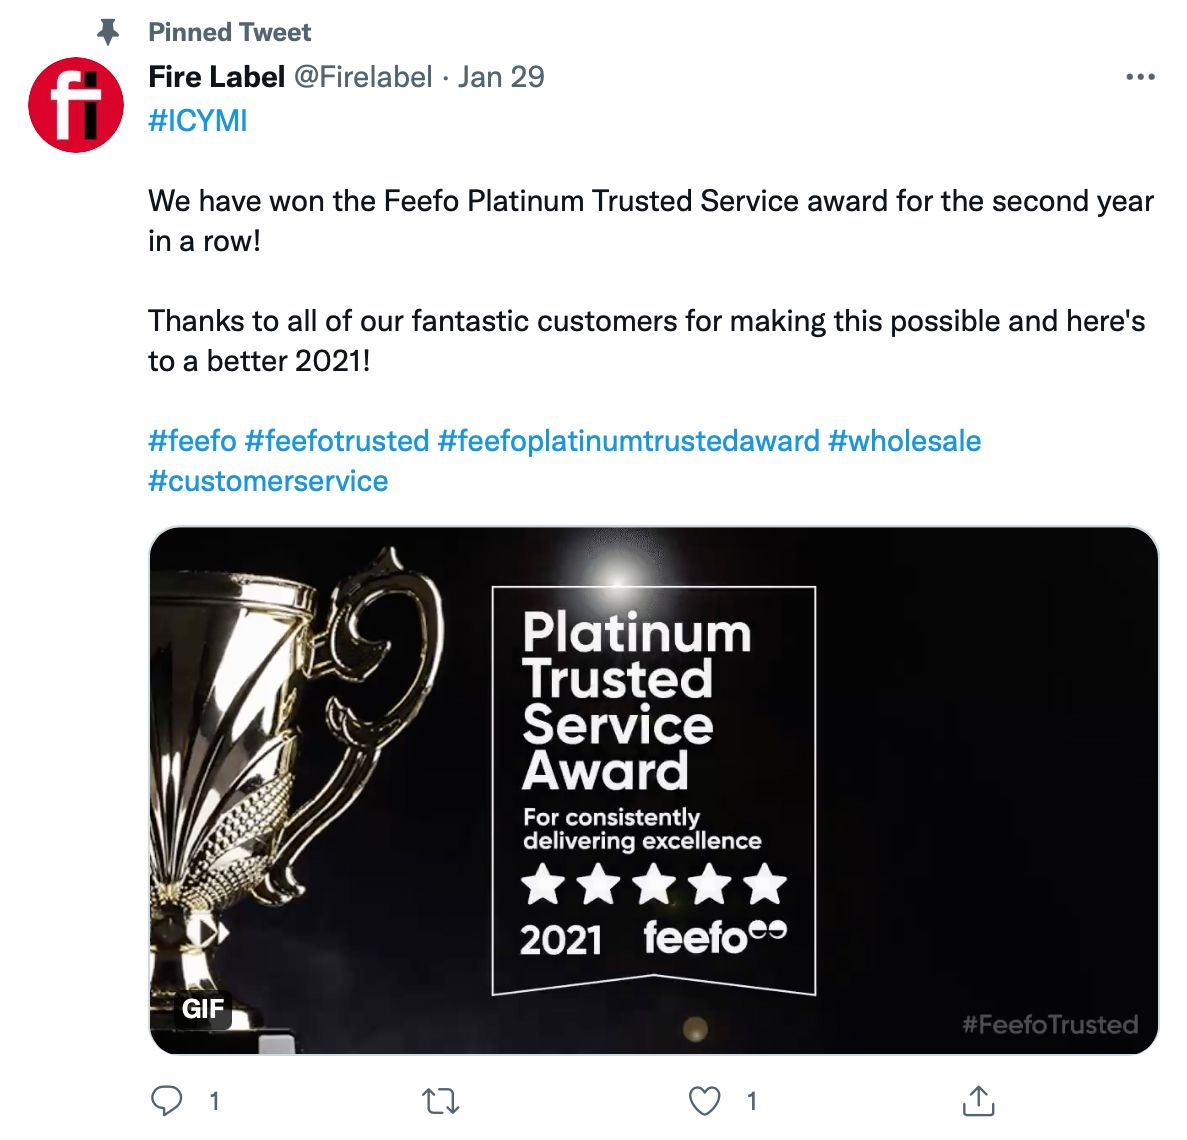 Pinned tweet by @Firelabel shows award and includes hashtags - pinned tweet ideas